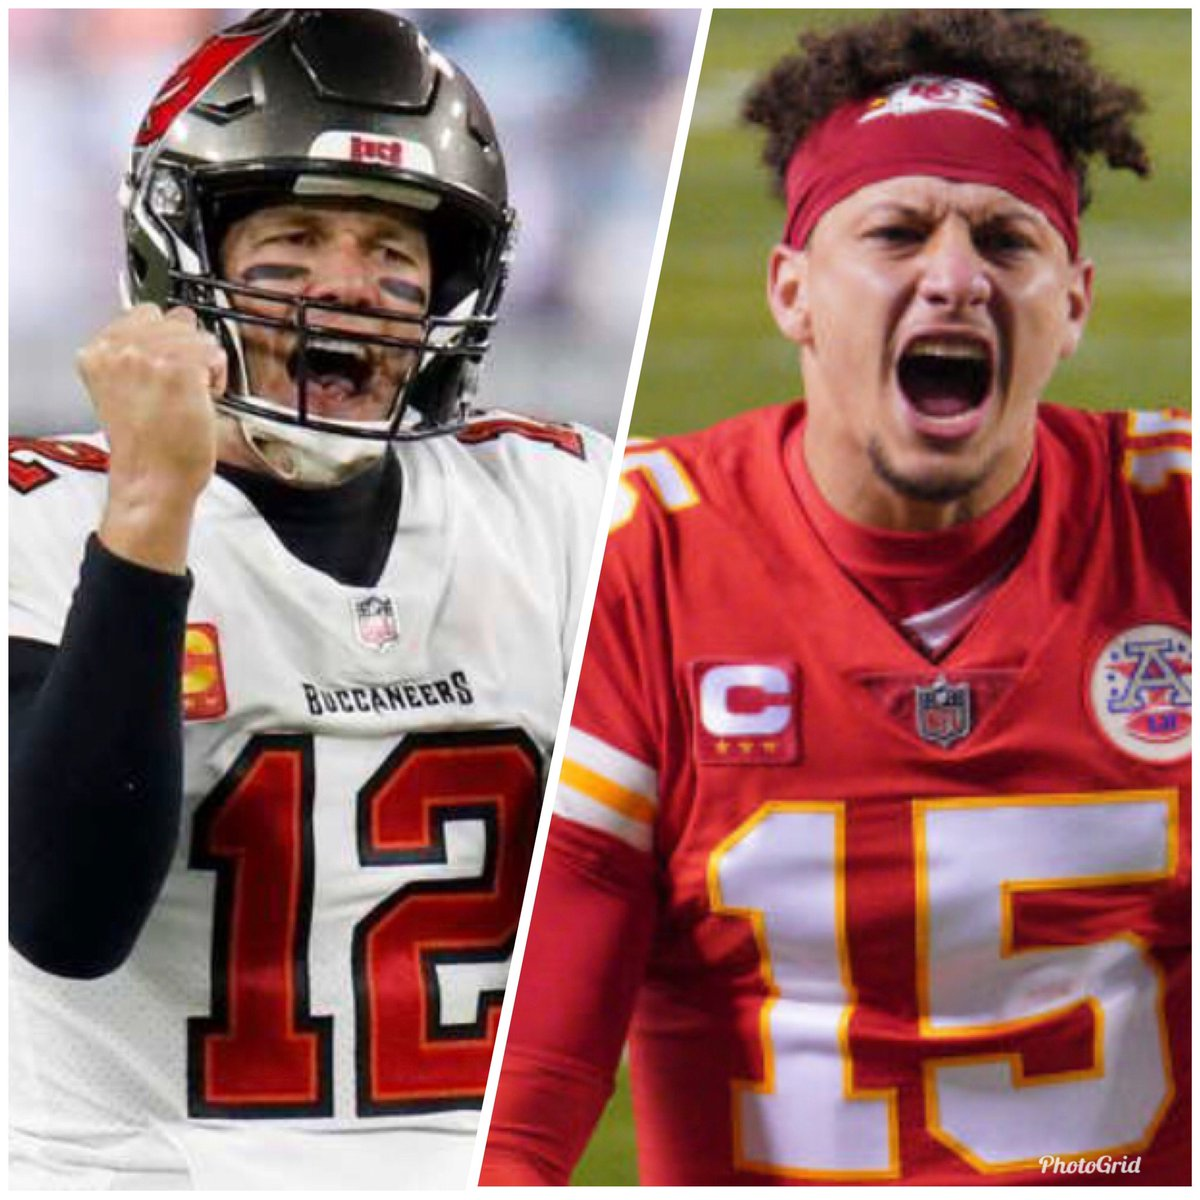 #SuperBowlLV is set! #TomBrady and the @Buccaneers versus #PatrickMahomes and the @Chiefs 🏈 Who you liking early? 🤔 It's gonna be a good one!